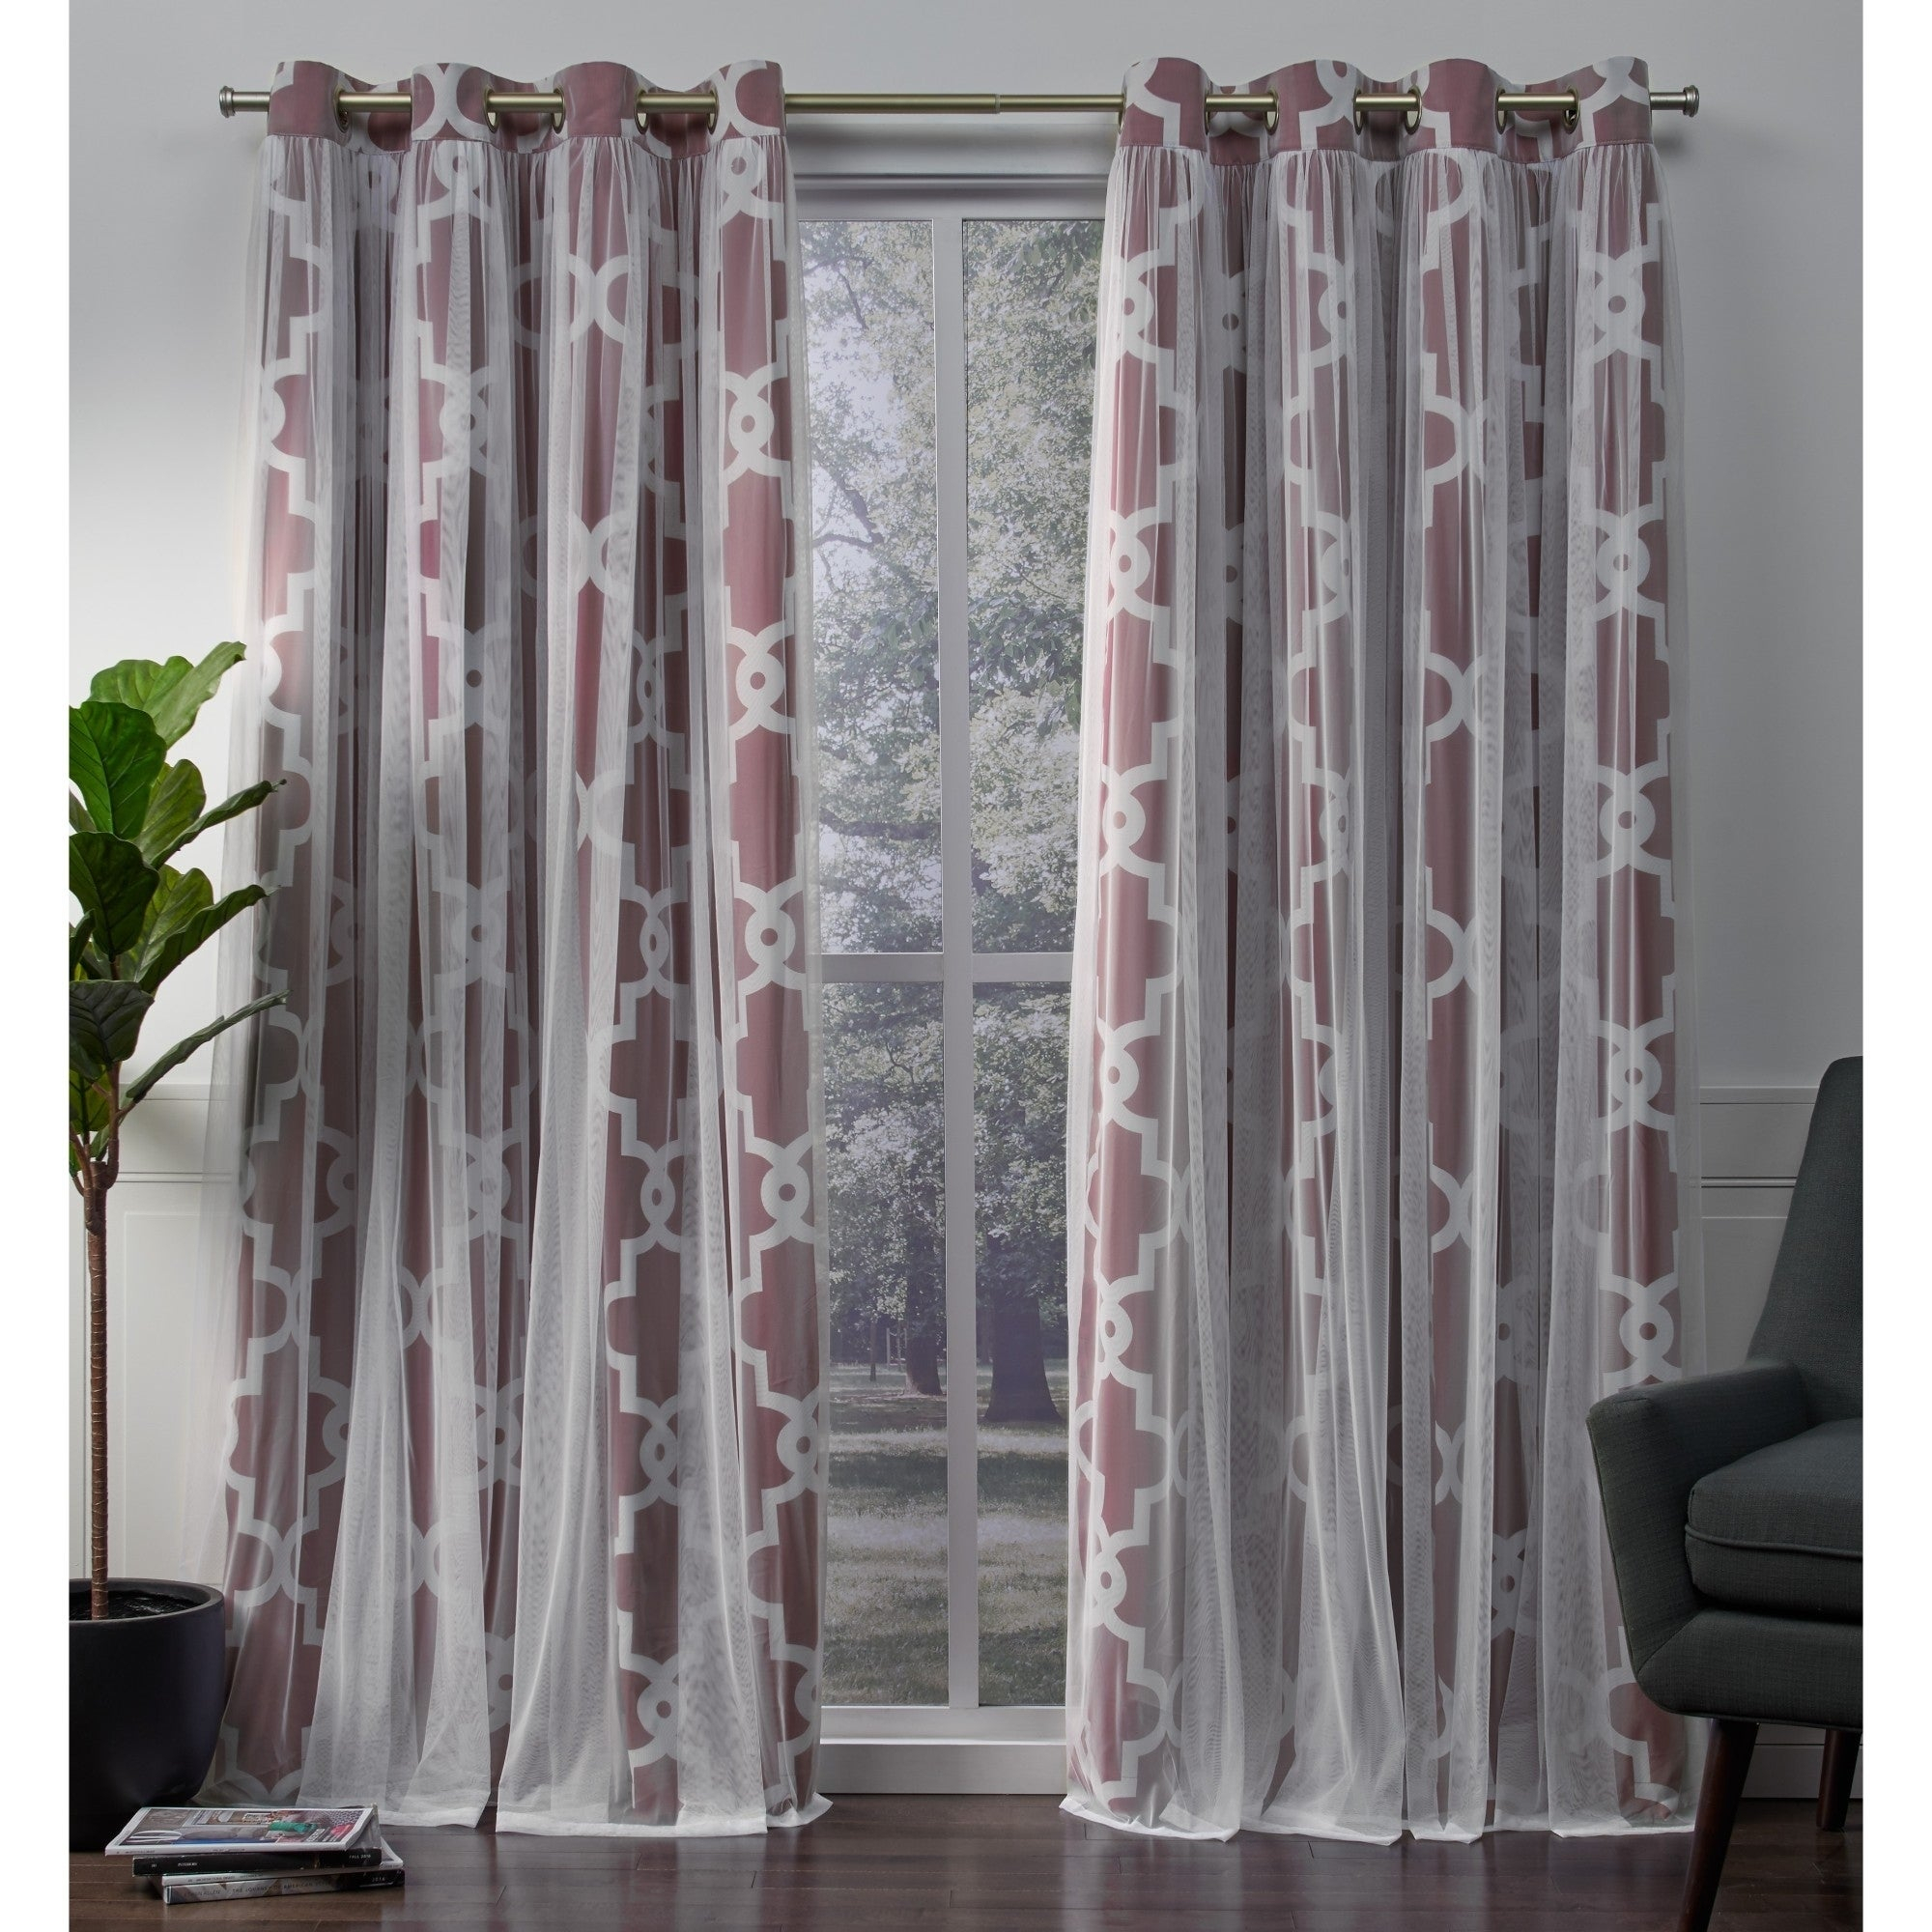 Ati Home Alegra Thermal Woven Blackout Grommet Top Curtain Panel Pair Regarding Thermal Woven Blackout Grommet Top Curtain Panel Pairs (View 13 of 30)